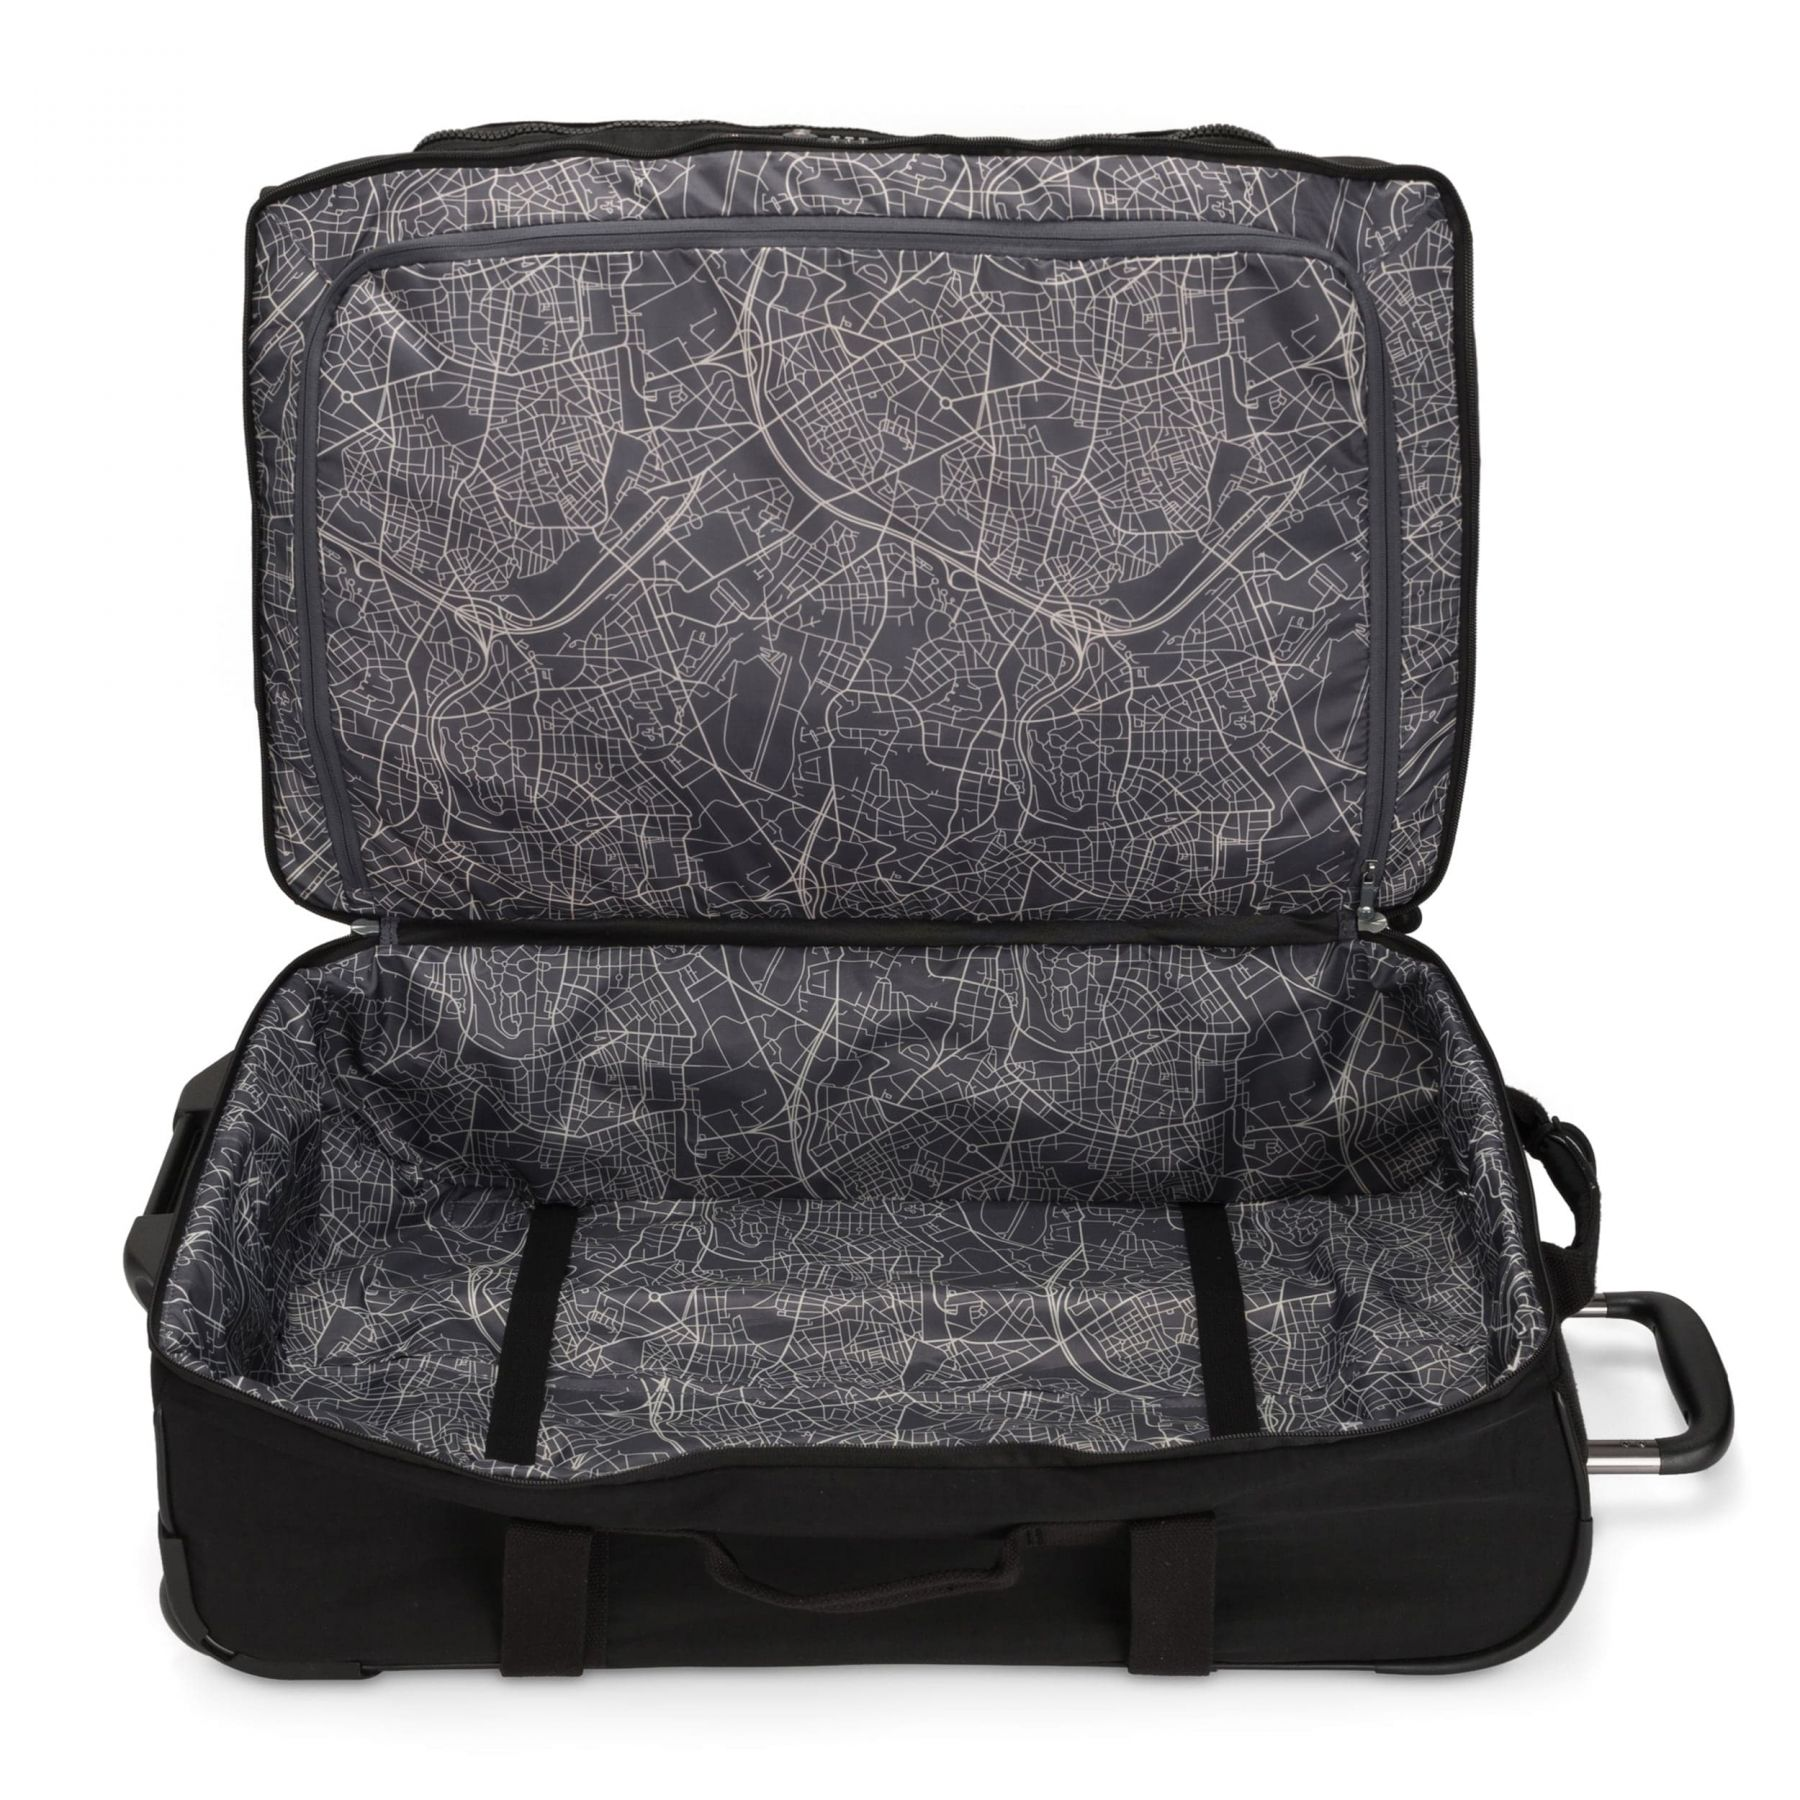 DISTANCE M Latest Luggage by Kipling - Inside view